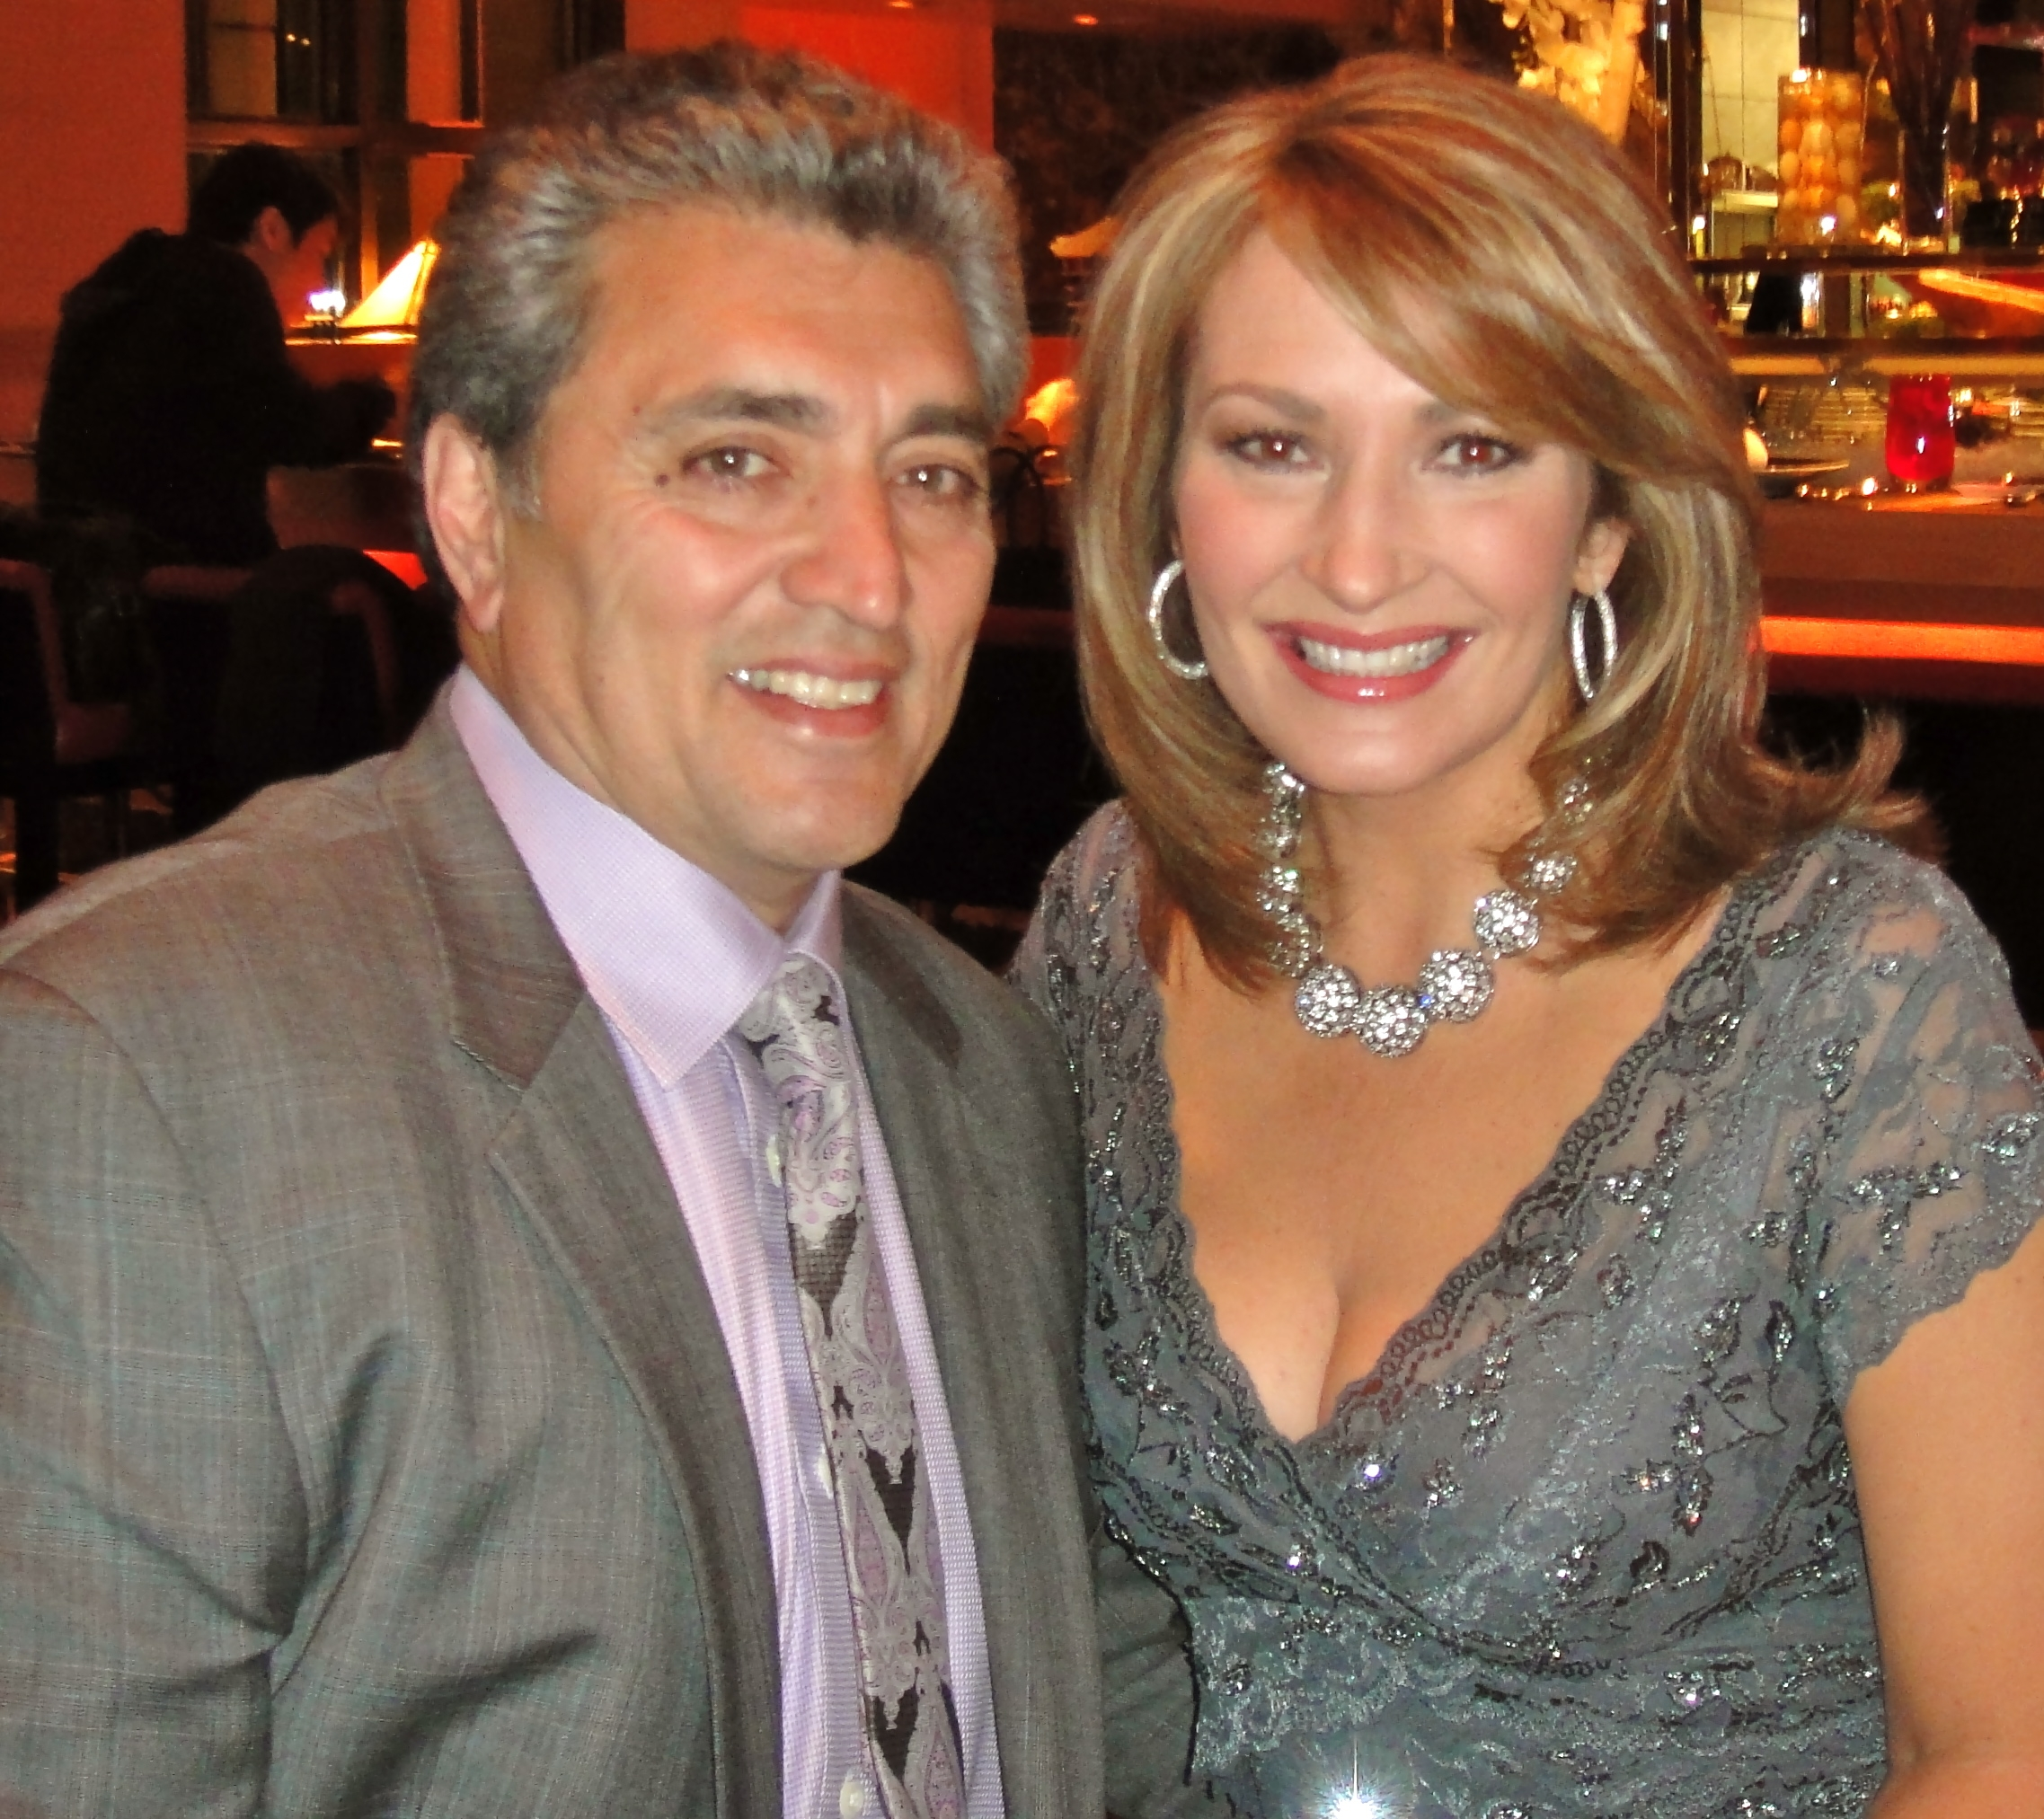 Here's Our Valentine's Day Couple: HSN Host Colleen Lopez And